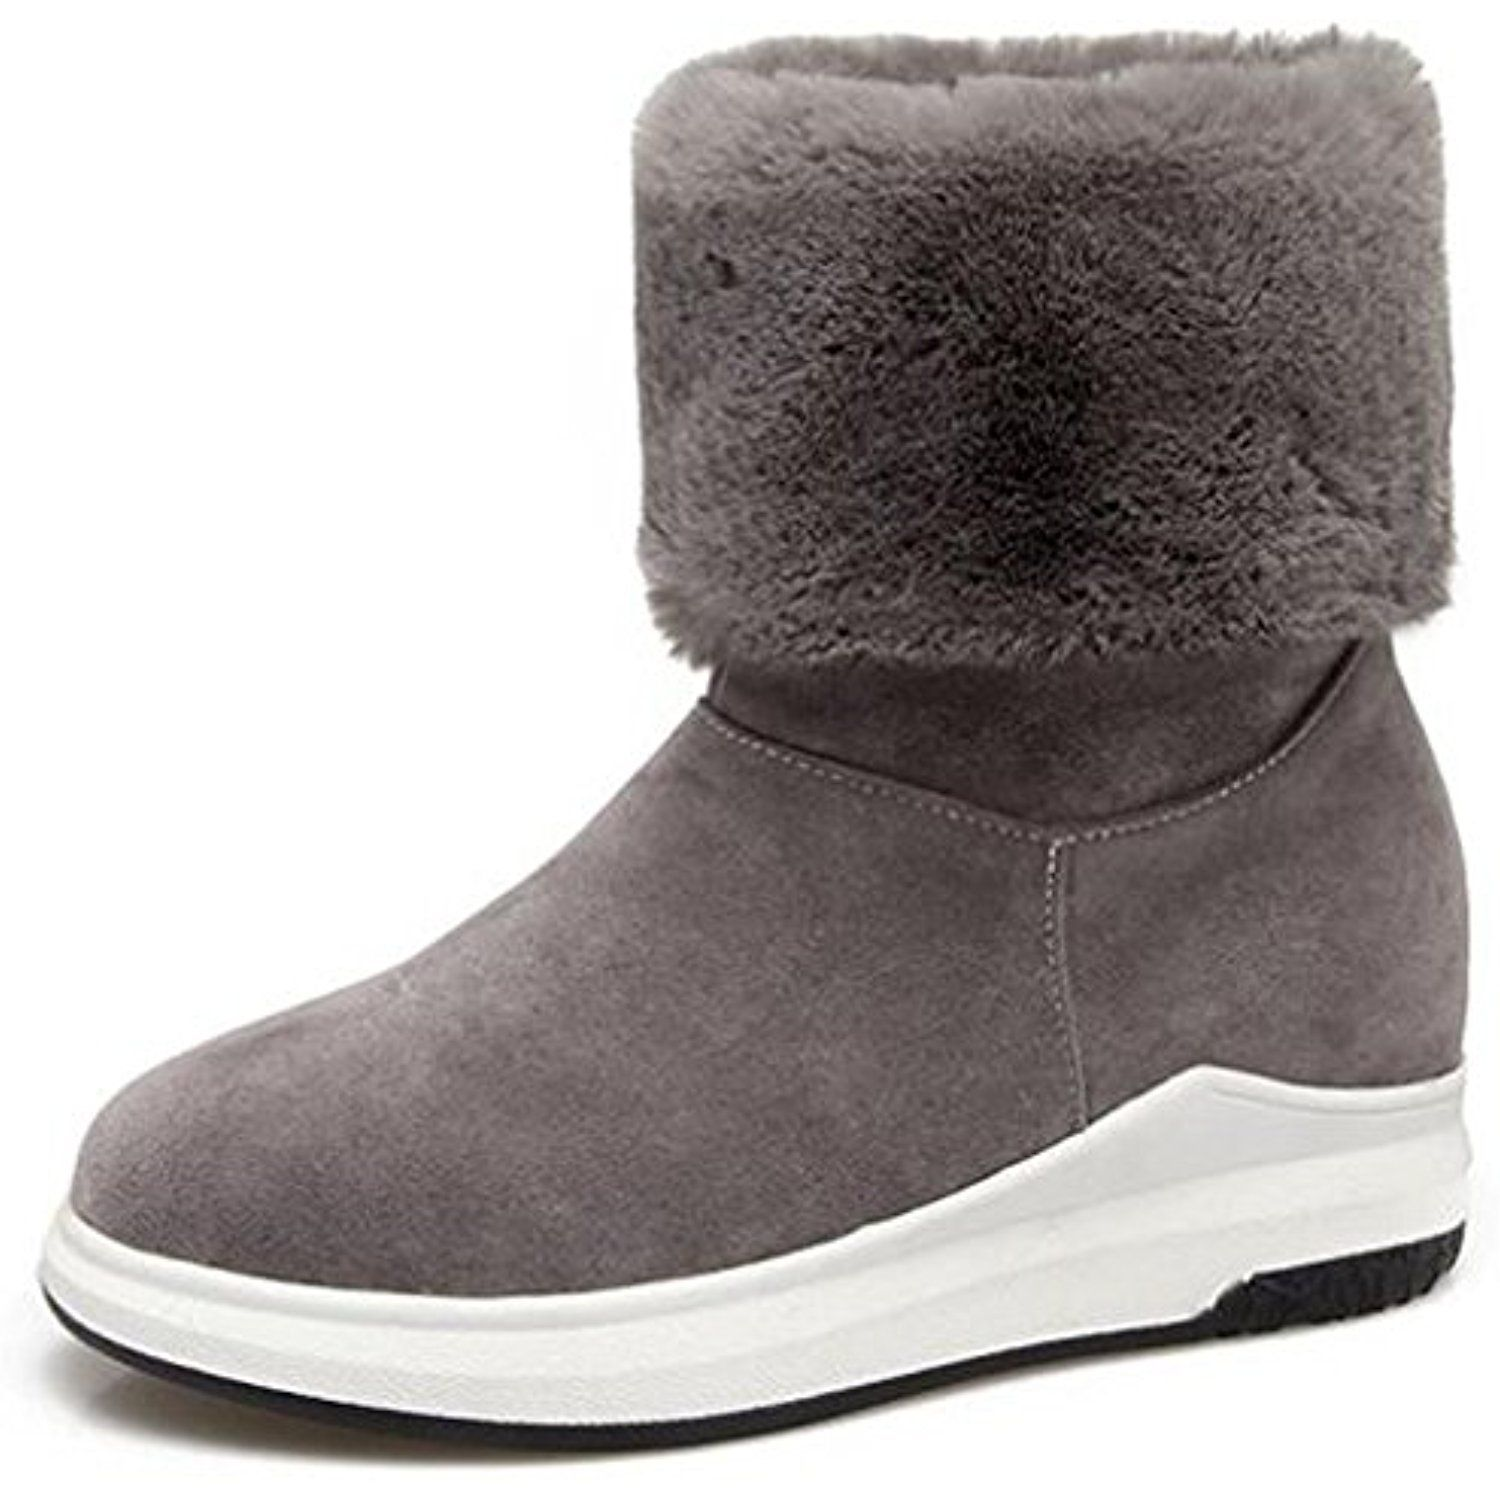 Women's Comfy Faux Fur Lined Pull On Short Ankle High Snow Boots Mid Wedge Heels